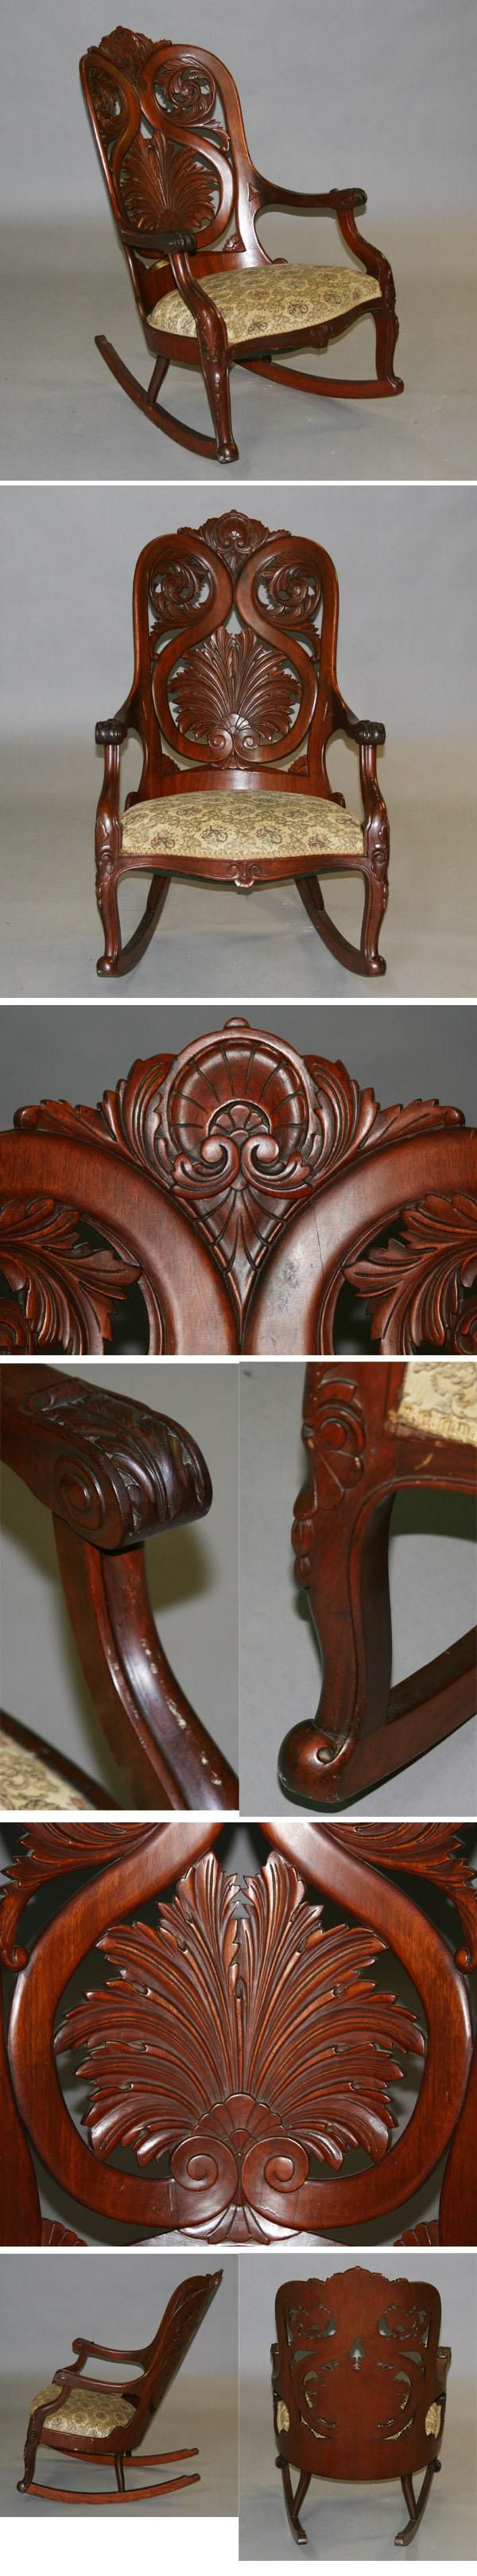 Victorian rocking chair - Find This Pin And More On Victorian Decor Furnishings Victorian Laminated Rosewood Rocking Chair